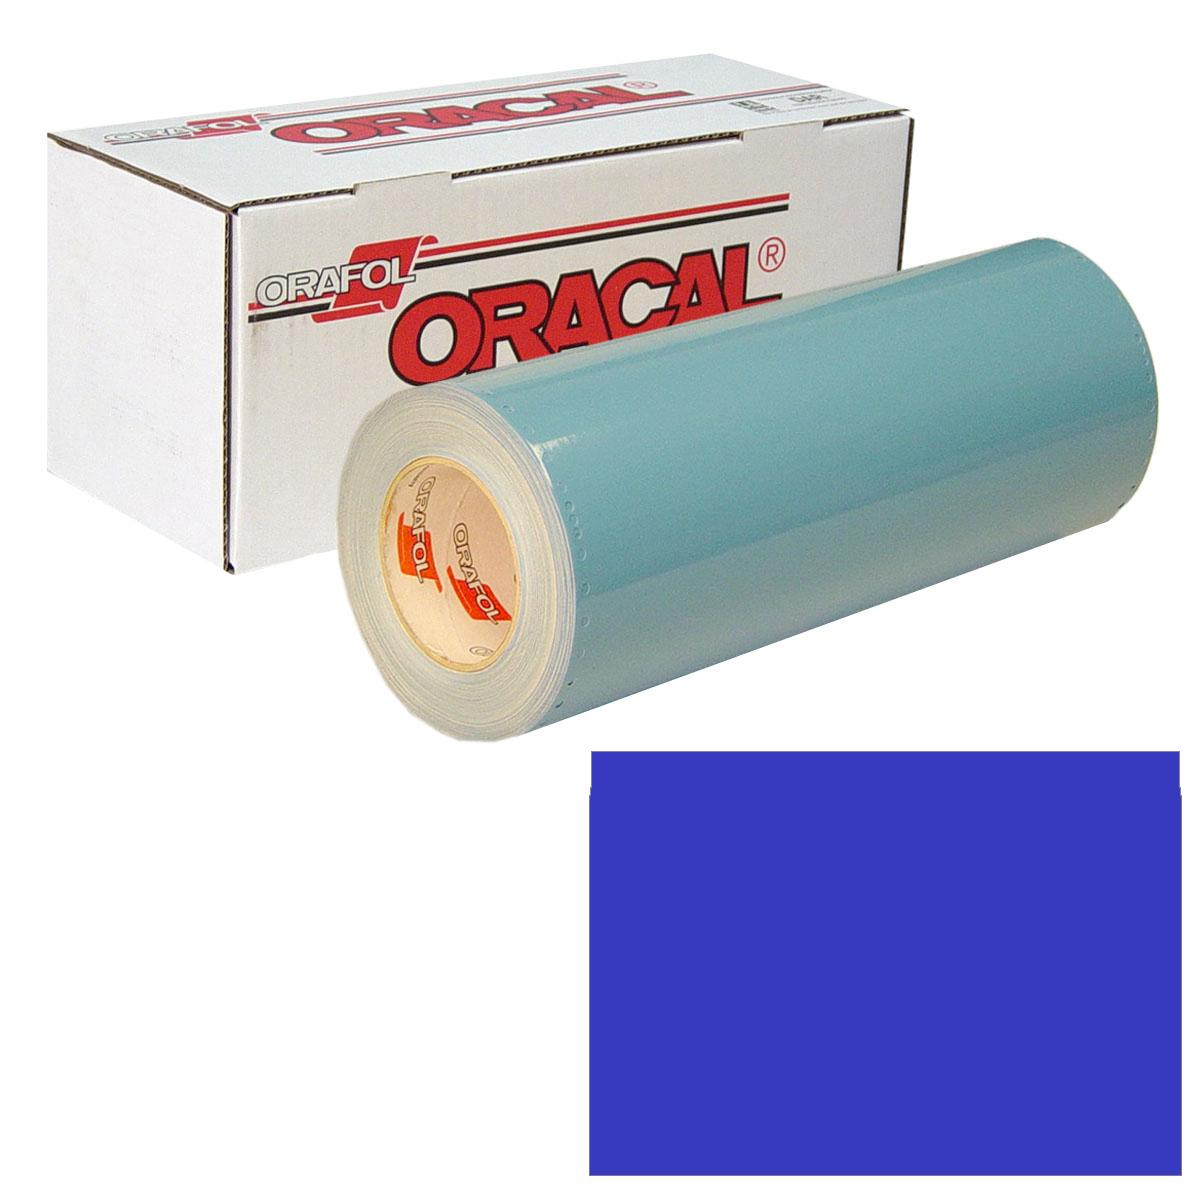 ORACAL 751 Unp 24in X 10yd 086 Brilliant Blue